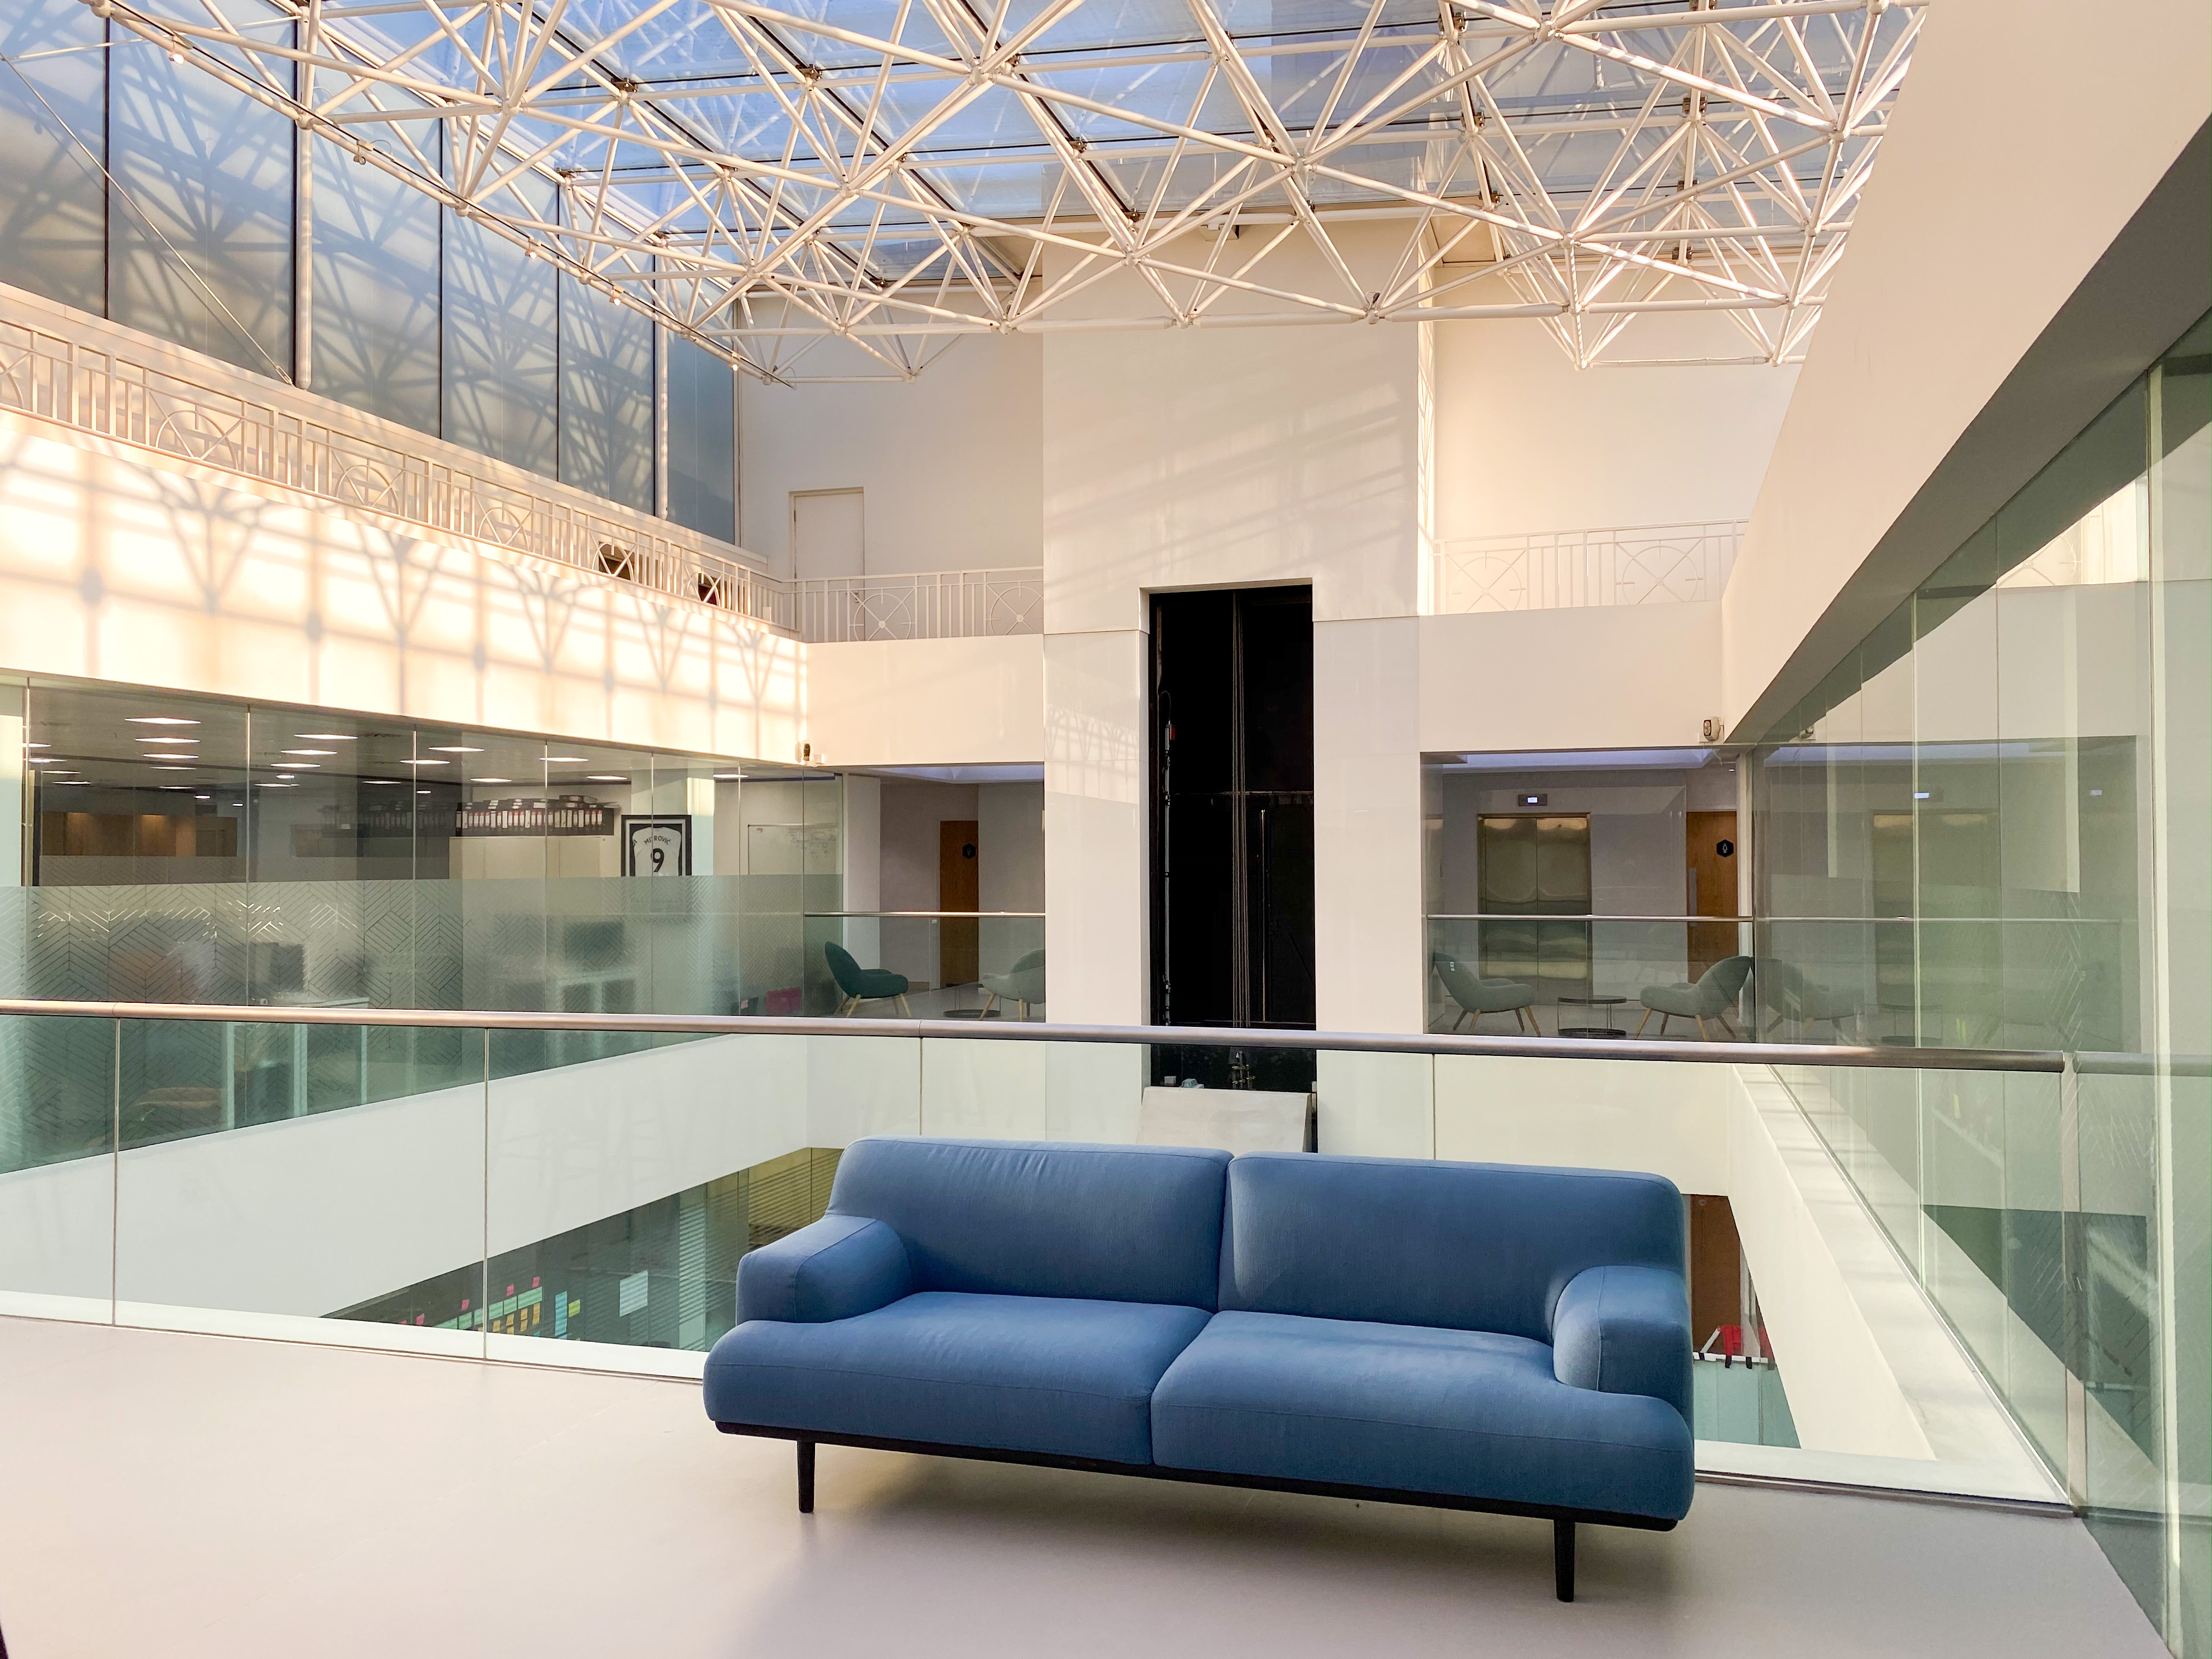 Photograph of the top floor of an open plan office with a large glass ceiling. Blue two seater fabric sofa in the foreground. Behind the chair in the background is an elevator with two blue arm chairs either side.